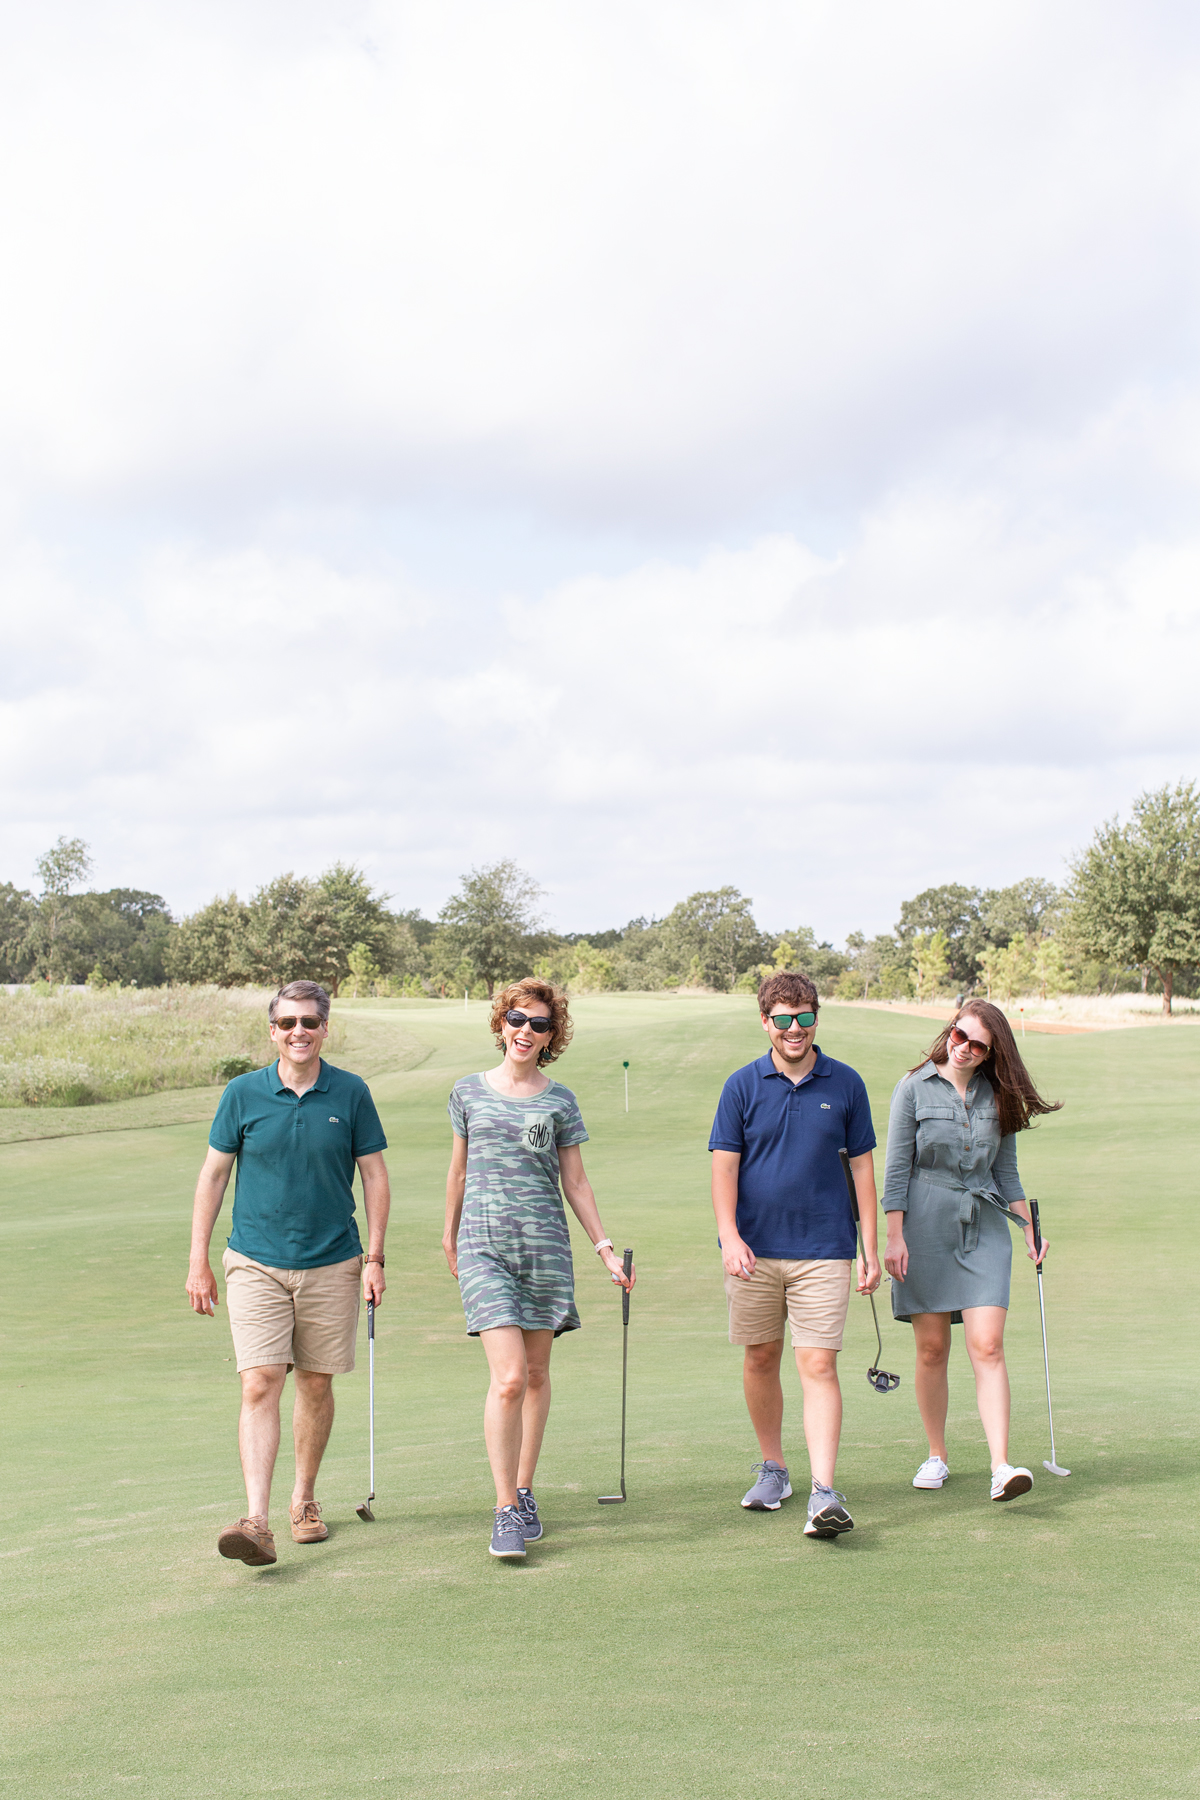 two couples walking together on a golf course